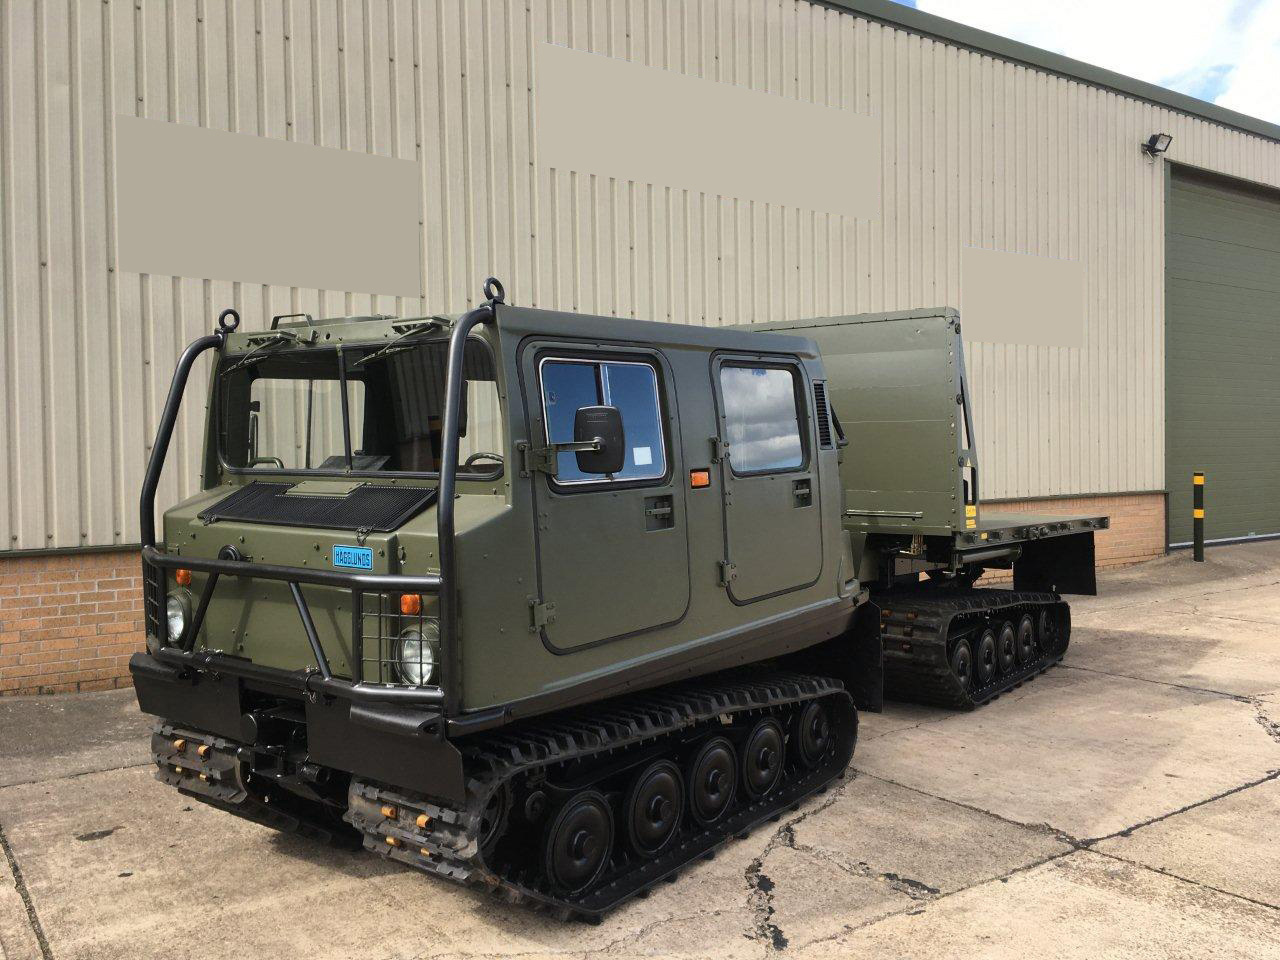 military vehicles for sale - Hagglunds Bv206 Load Carrier with Crane